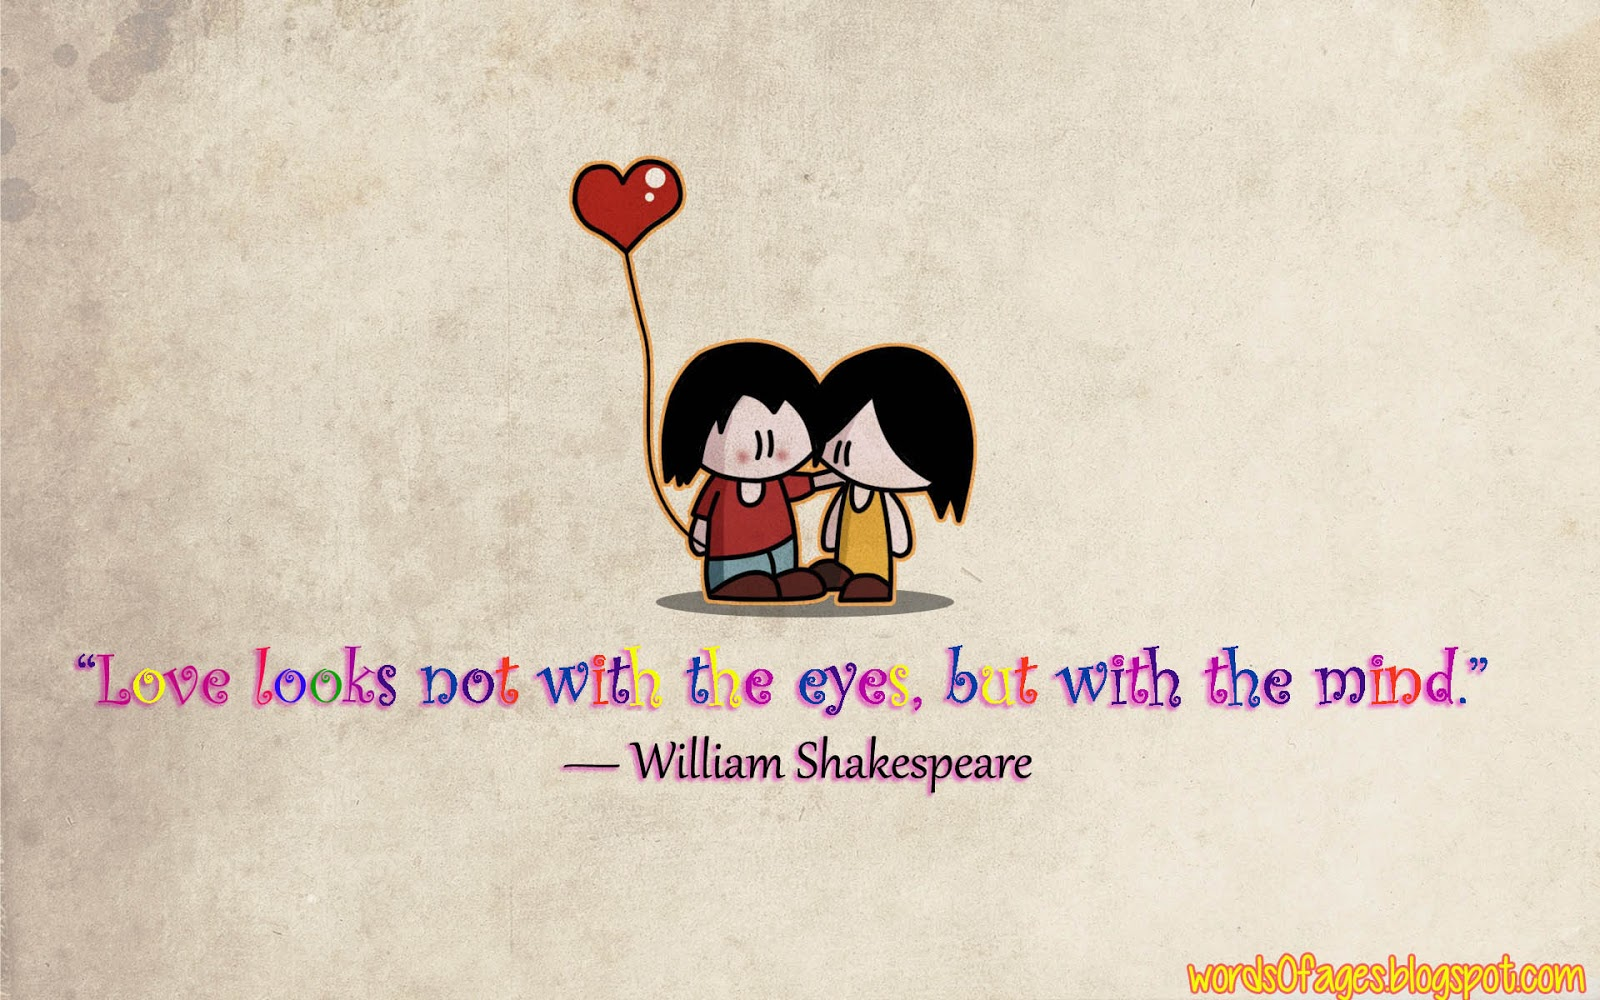 shakespeare quotes Love Looks